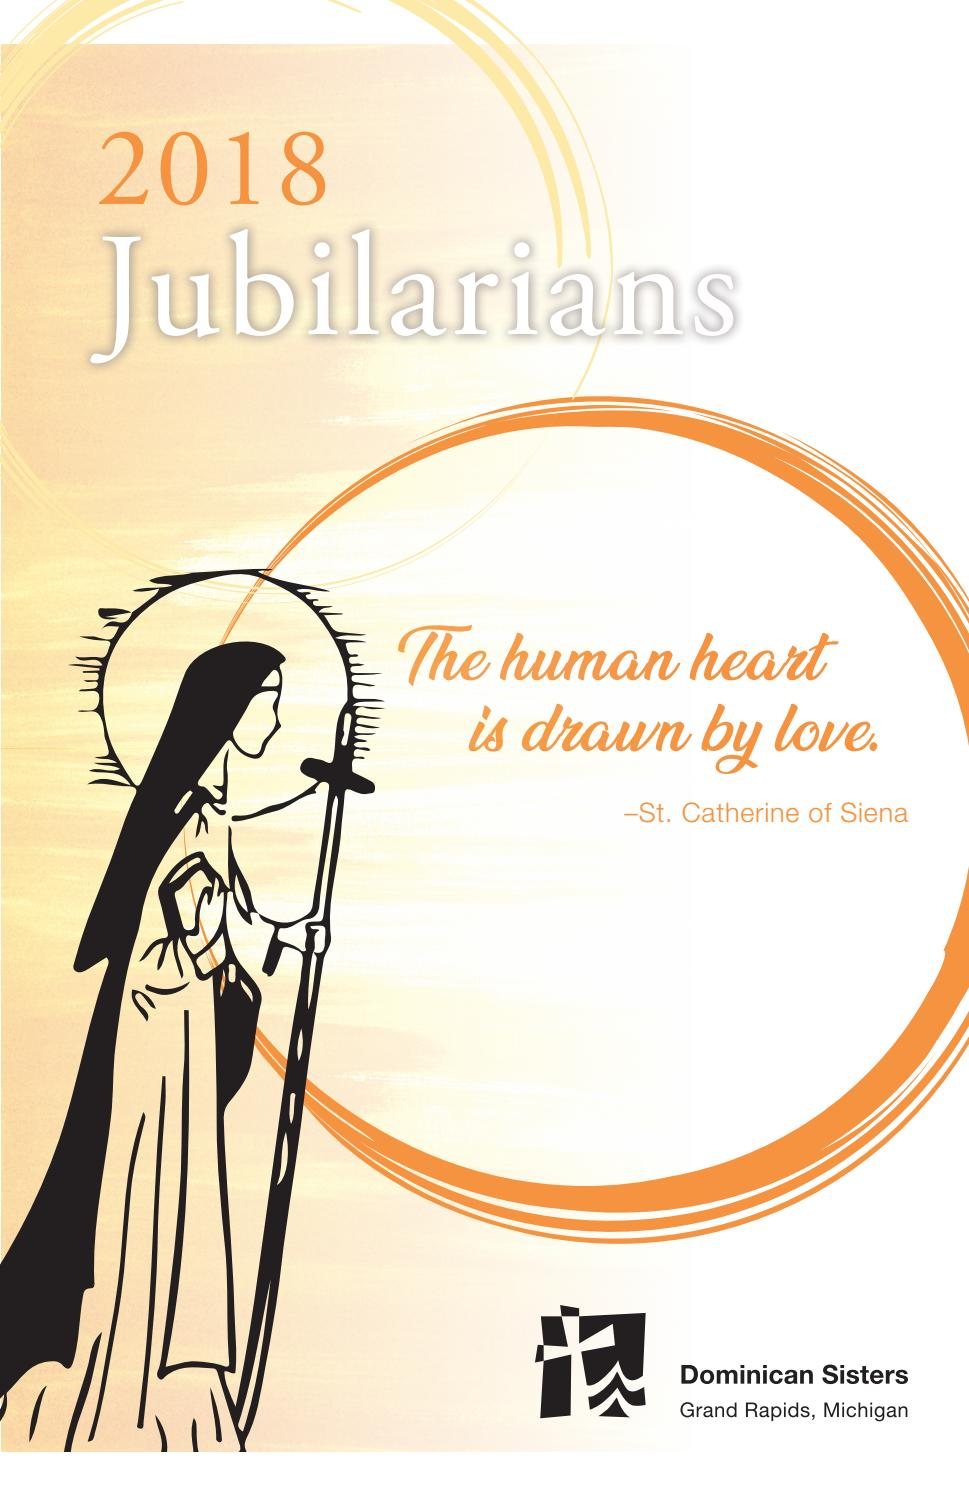 Dominican Sisters Grand Rapids 2018 Jubilarian Booklet By Dominican Sisters Grand Rapids Issuu